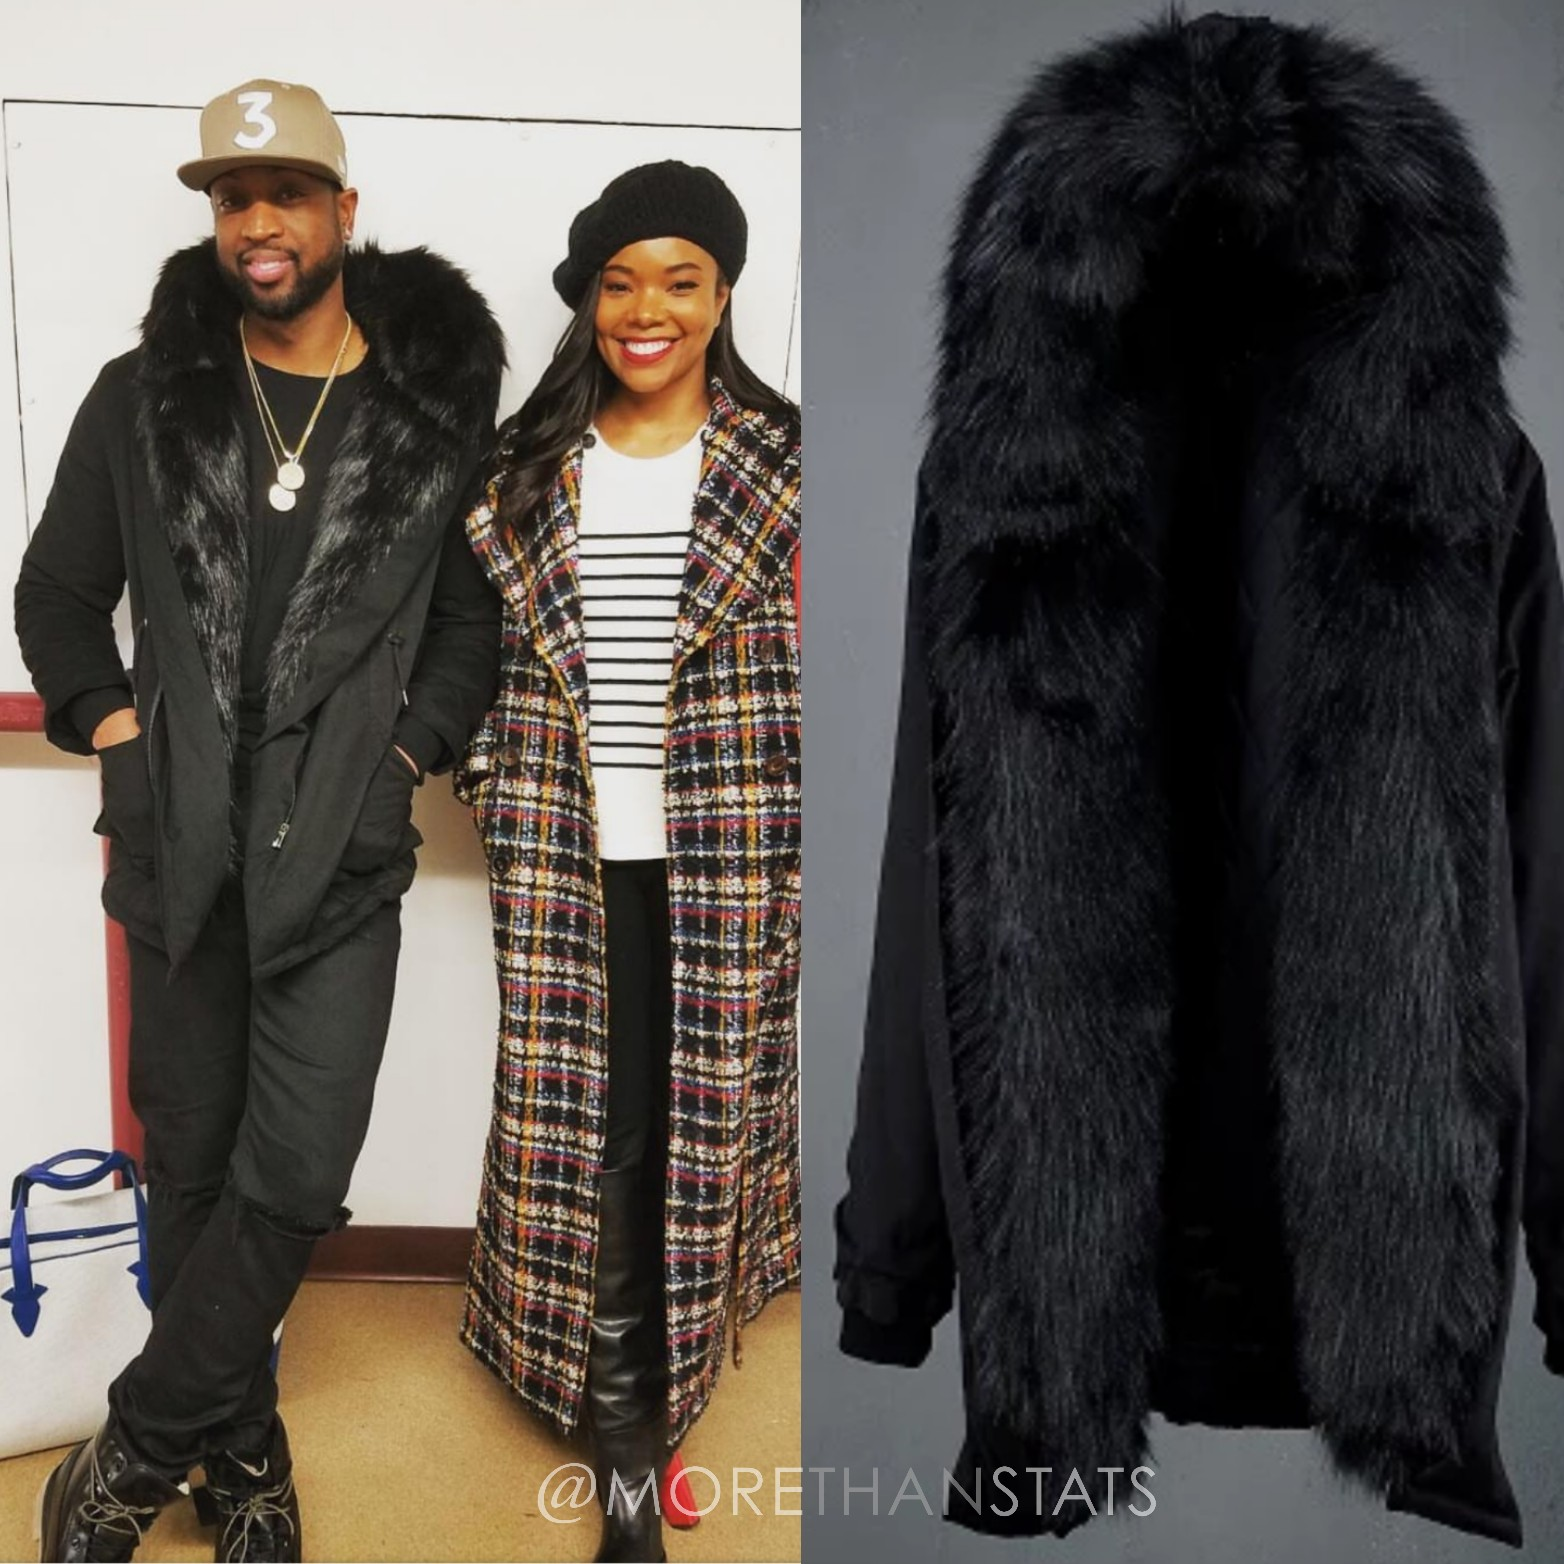 Dwyane Wade Gifted With A Press Play Co. Fur Hooded Mens Fashion Jacket